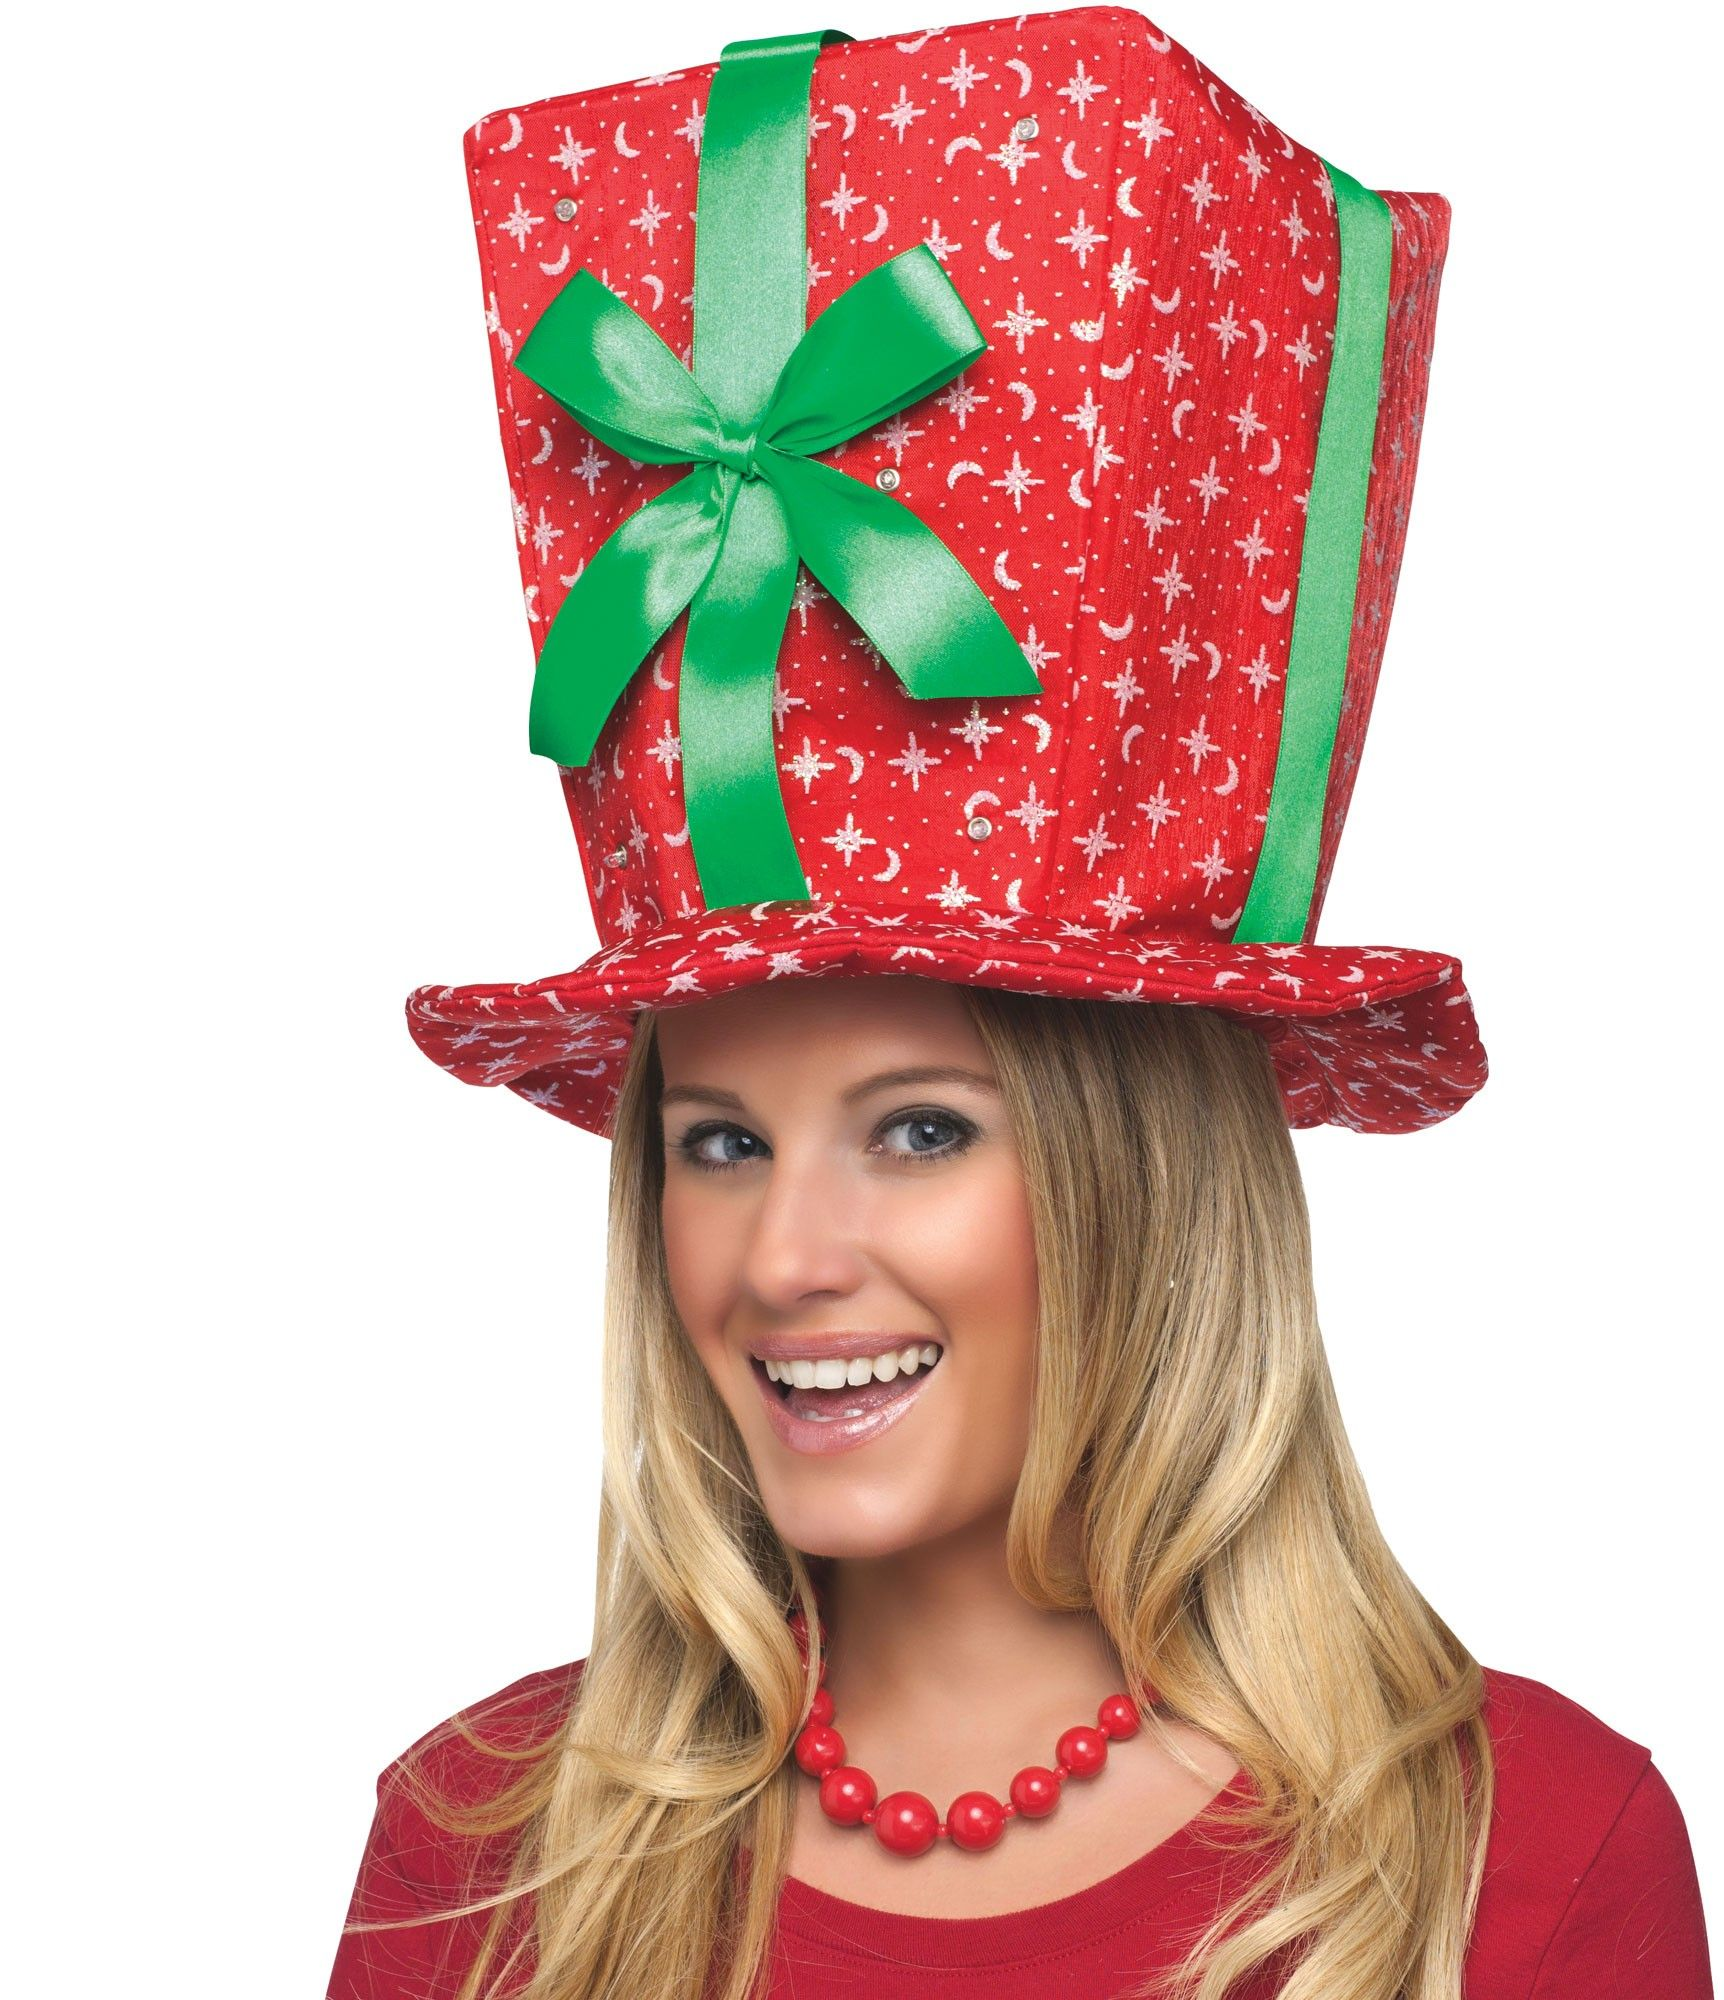 71f2acb4360 Christmas Present Hat - Santa Suits   Costumes - by Fun World Costumes